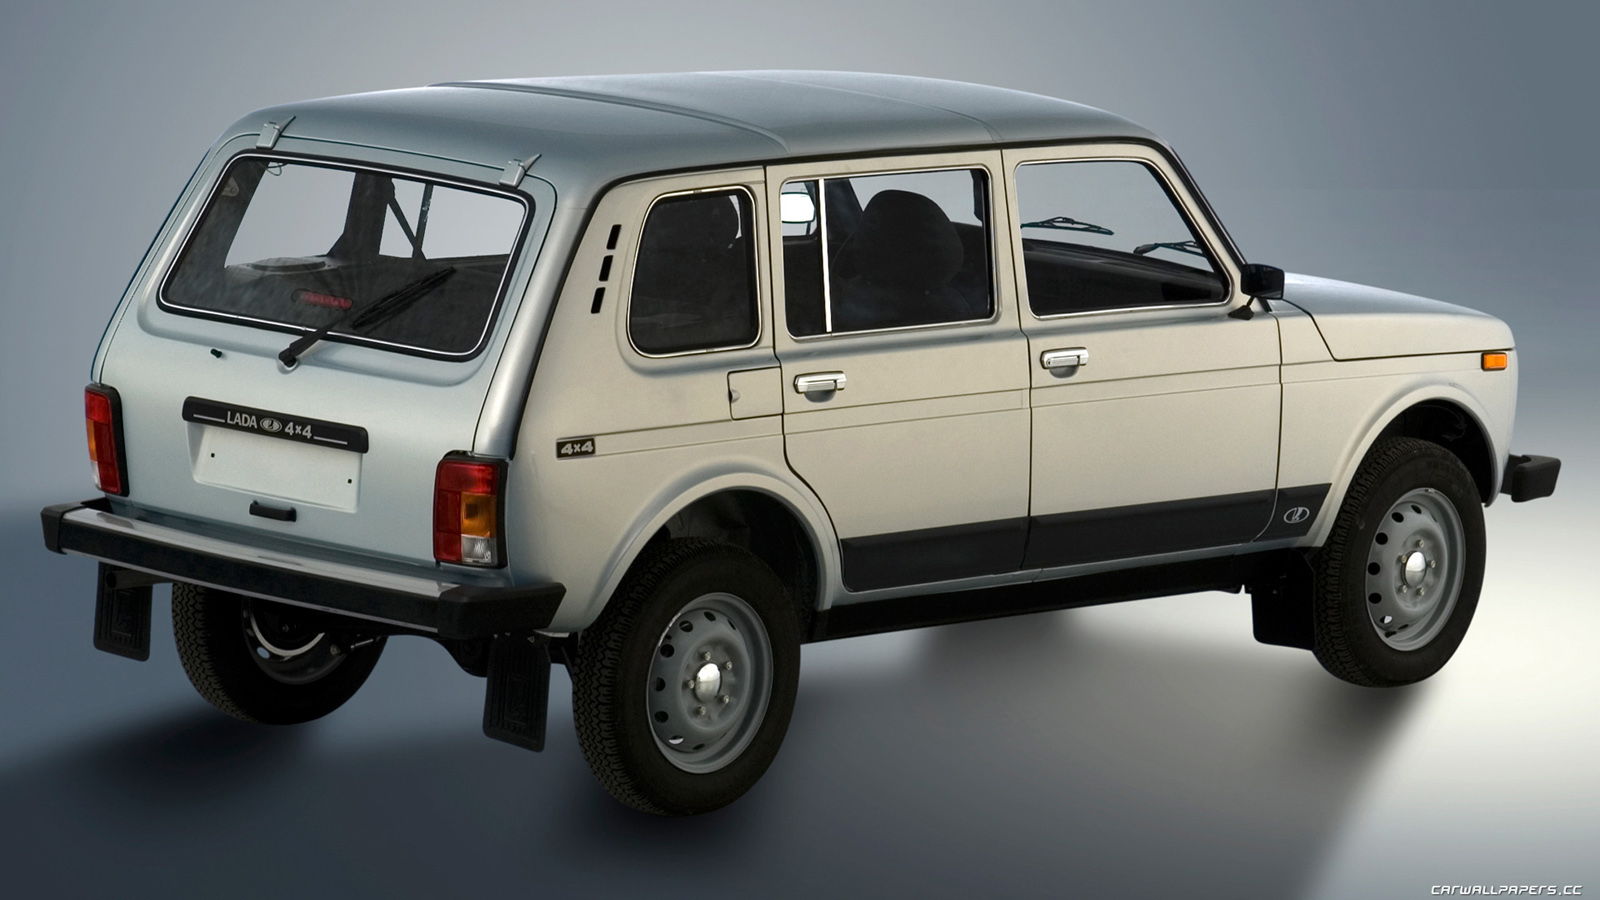 lada 2121 niva 1600 photos reviews news specs buy car. Black Bedroom Furniture Sets. Home Design Ideas